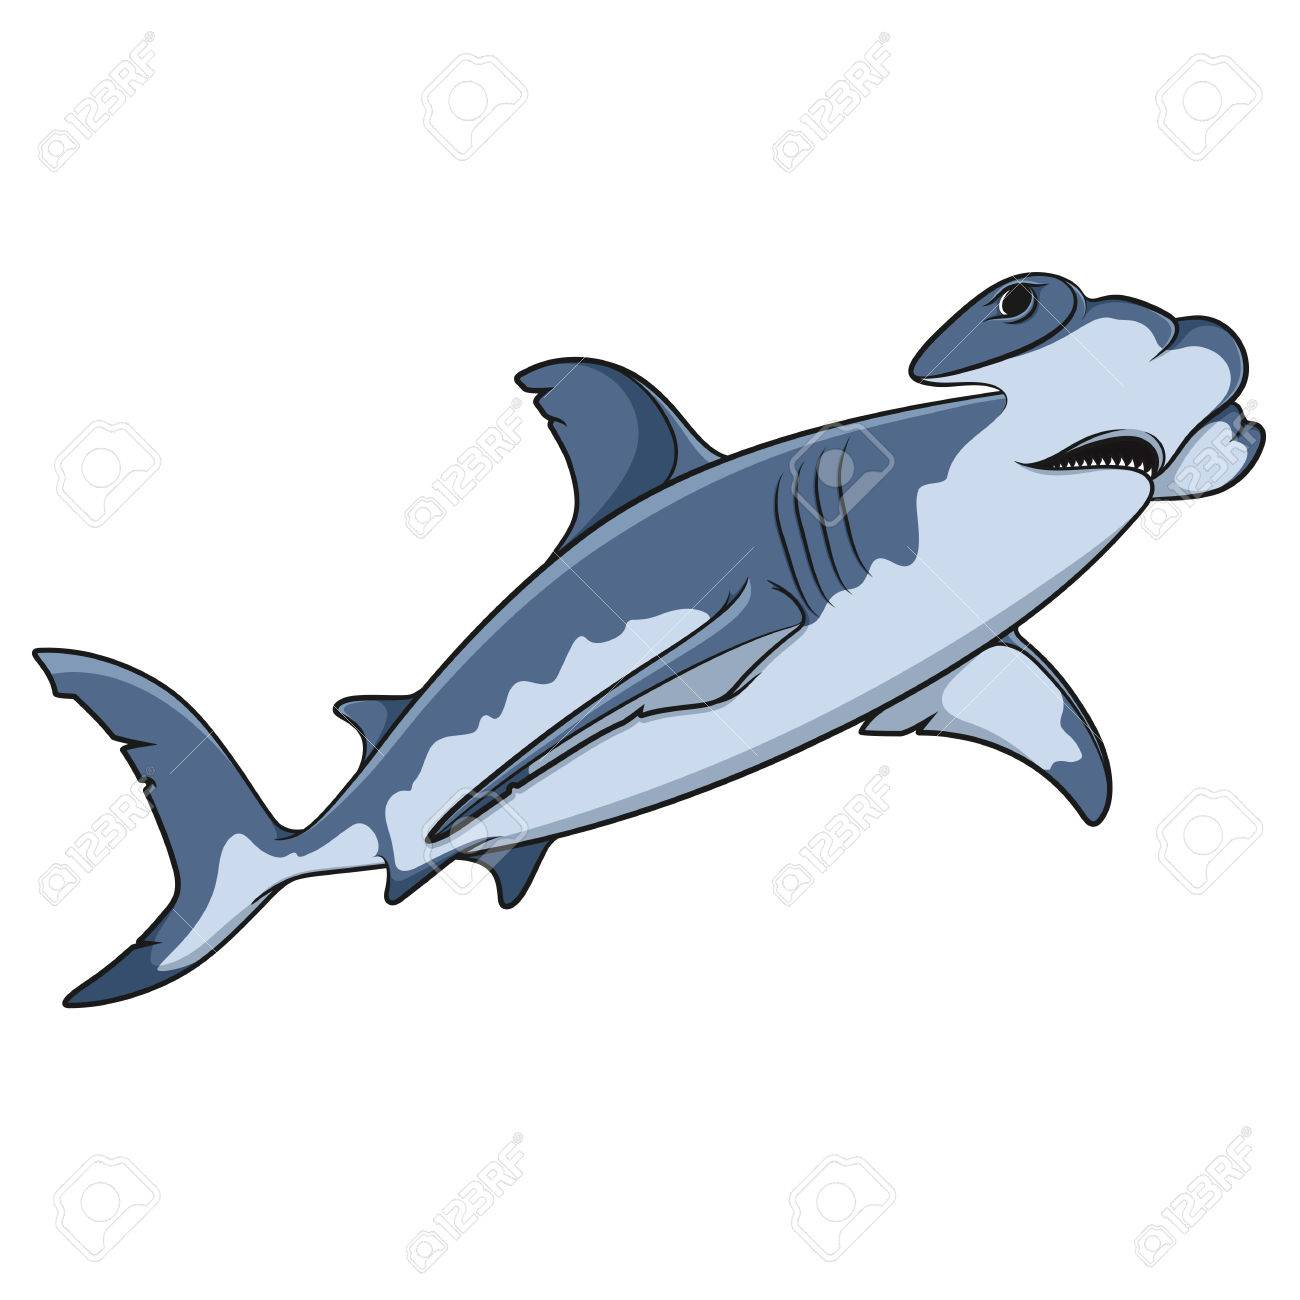 hight resolution of vector vector color illustration of the hammerhead shark isolated object on a white background